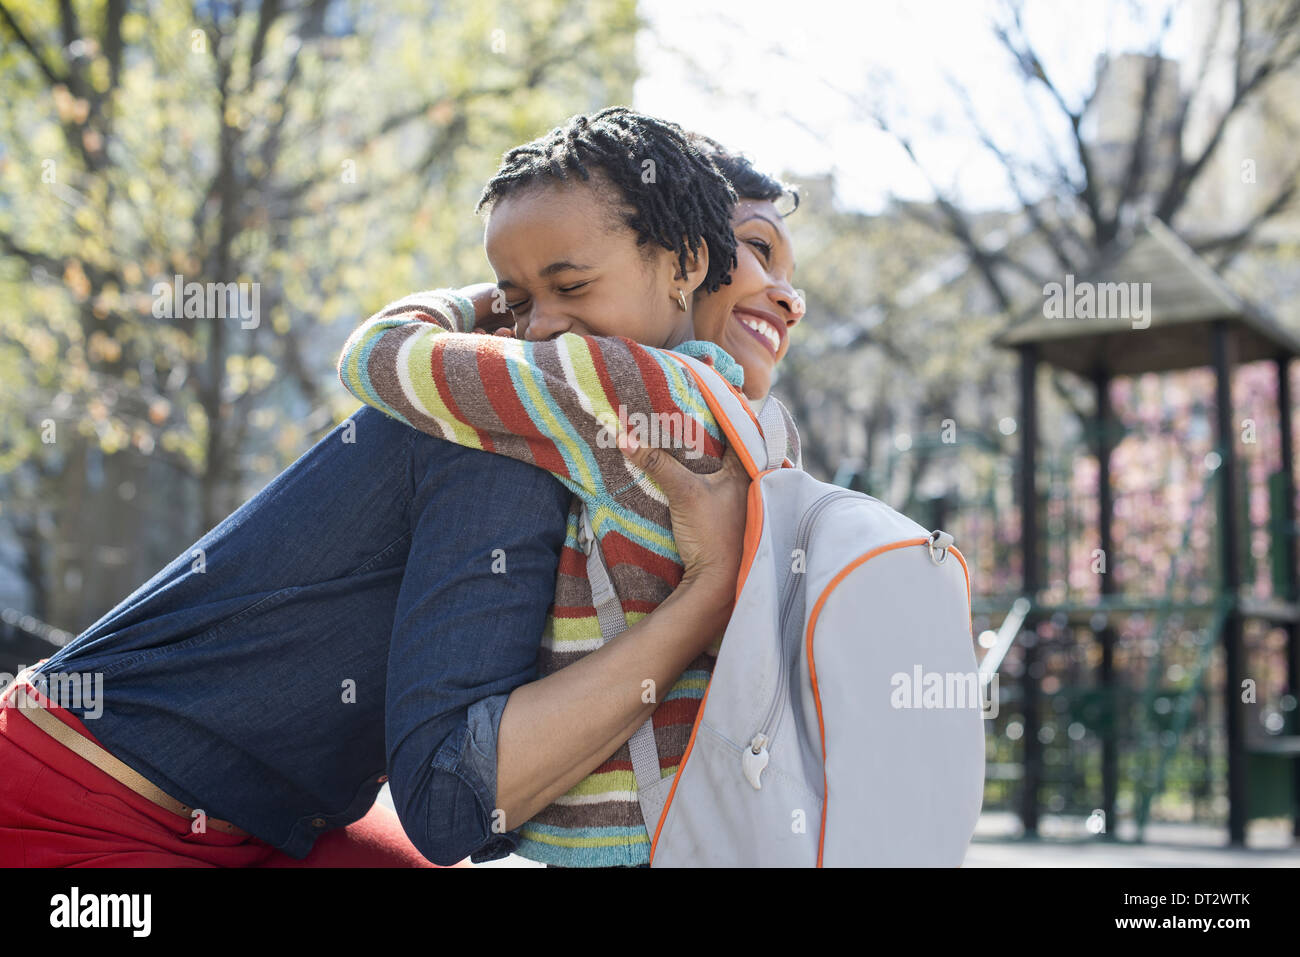 Sunshine and cherry blossom A mother and son spending time together - Stock Image